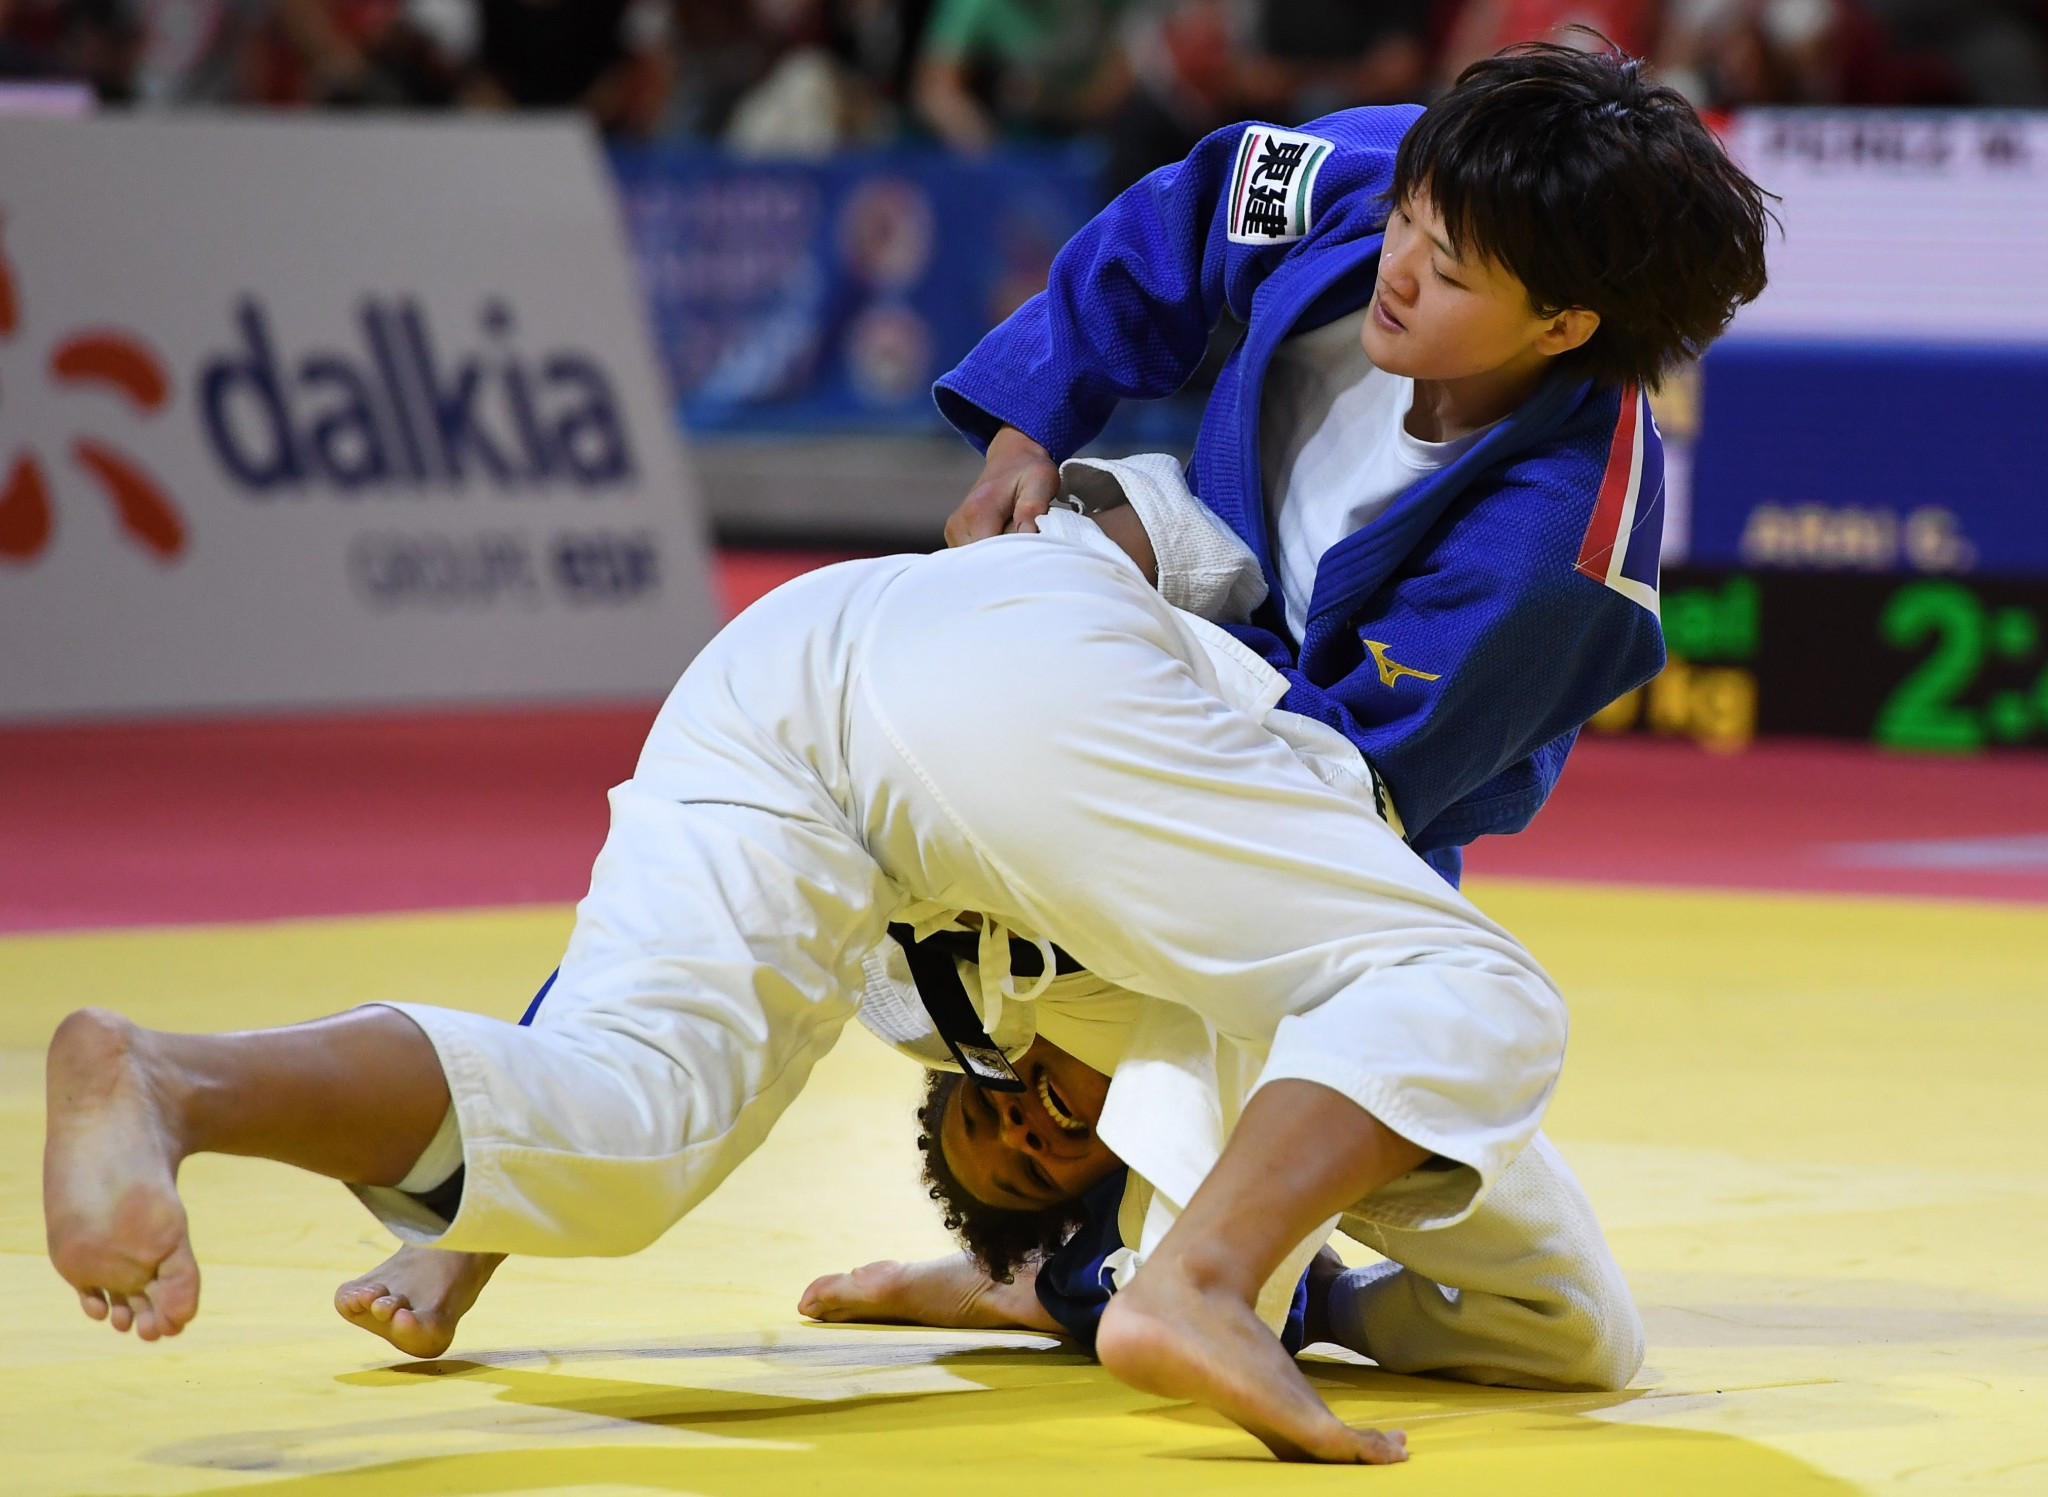 Chizuru Arai claimed Japan's sixth gold medal of the Championships ©Getty Images